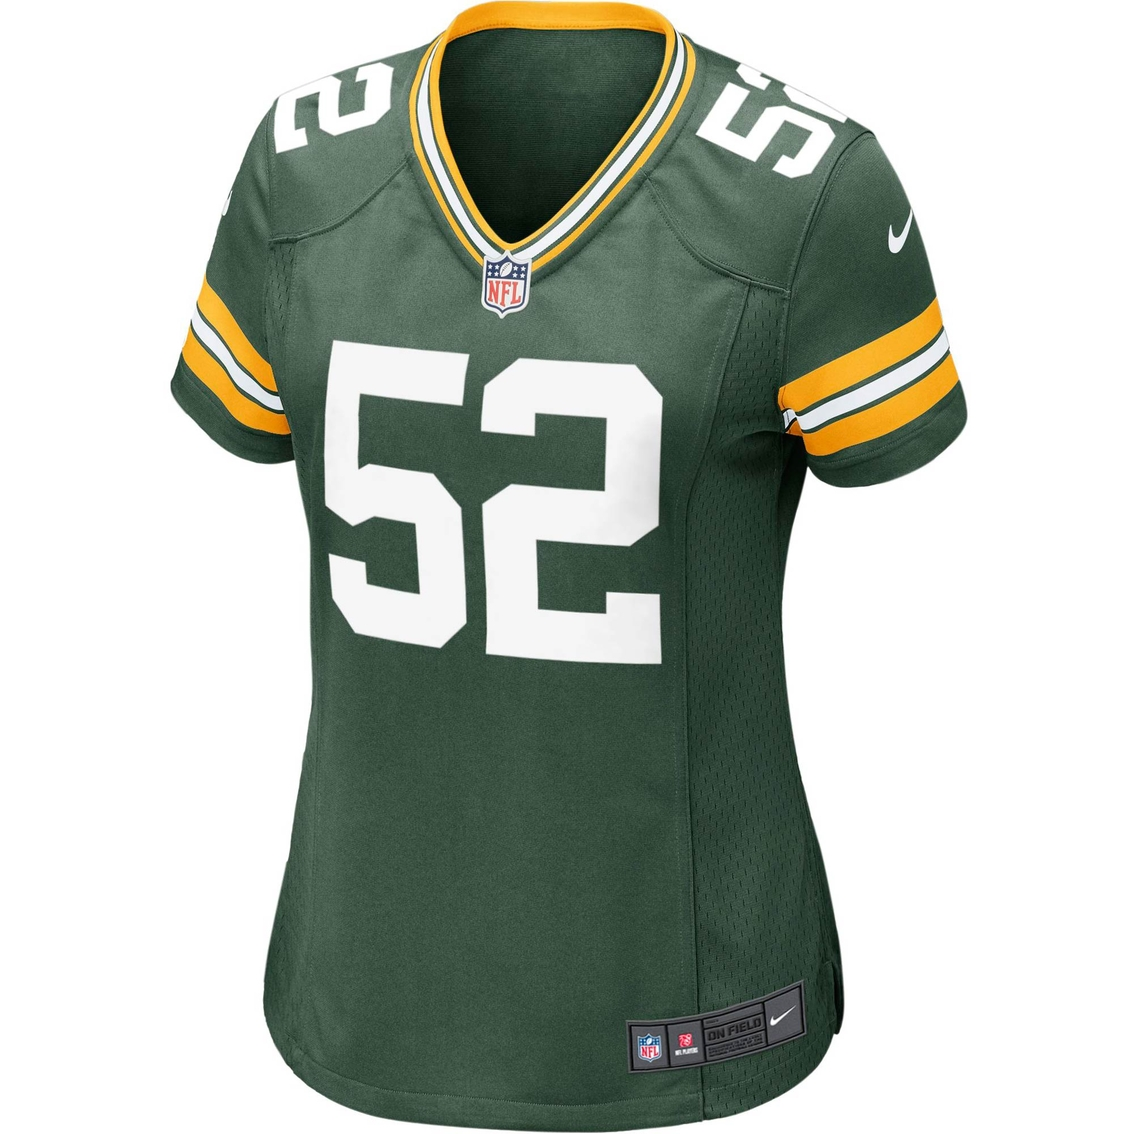 Nike nfl green bay packers women 39 s clay matthews jersey for Furniture xchange new jersey